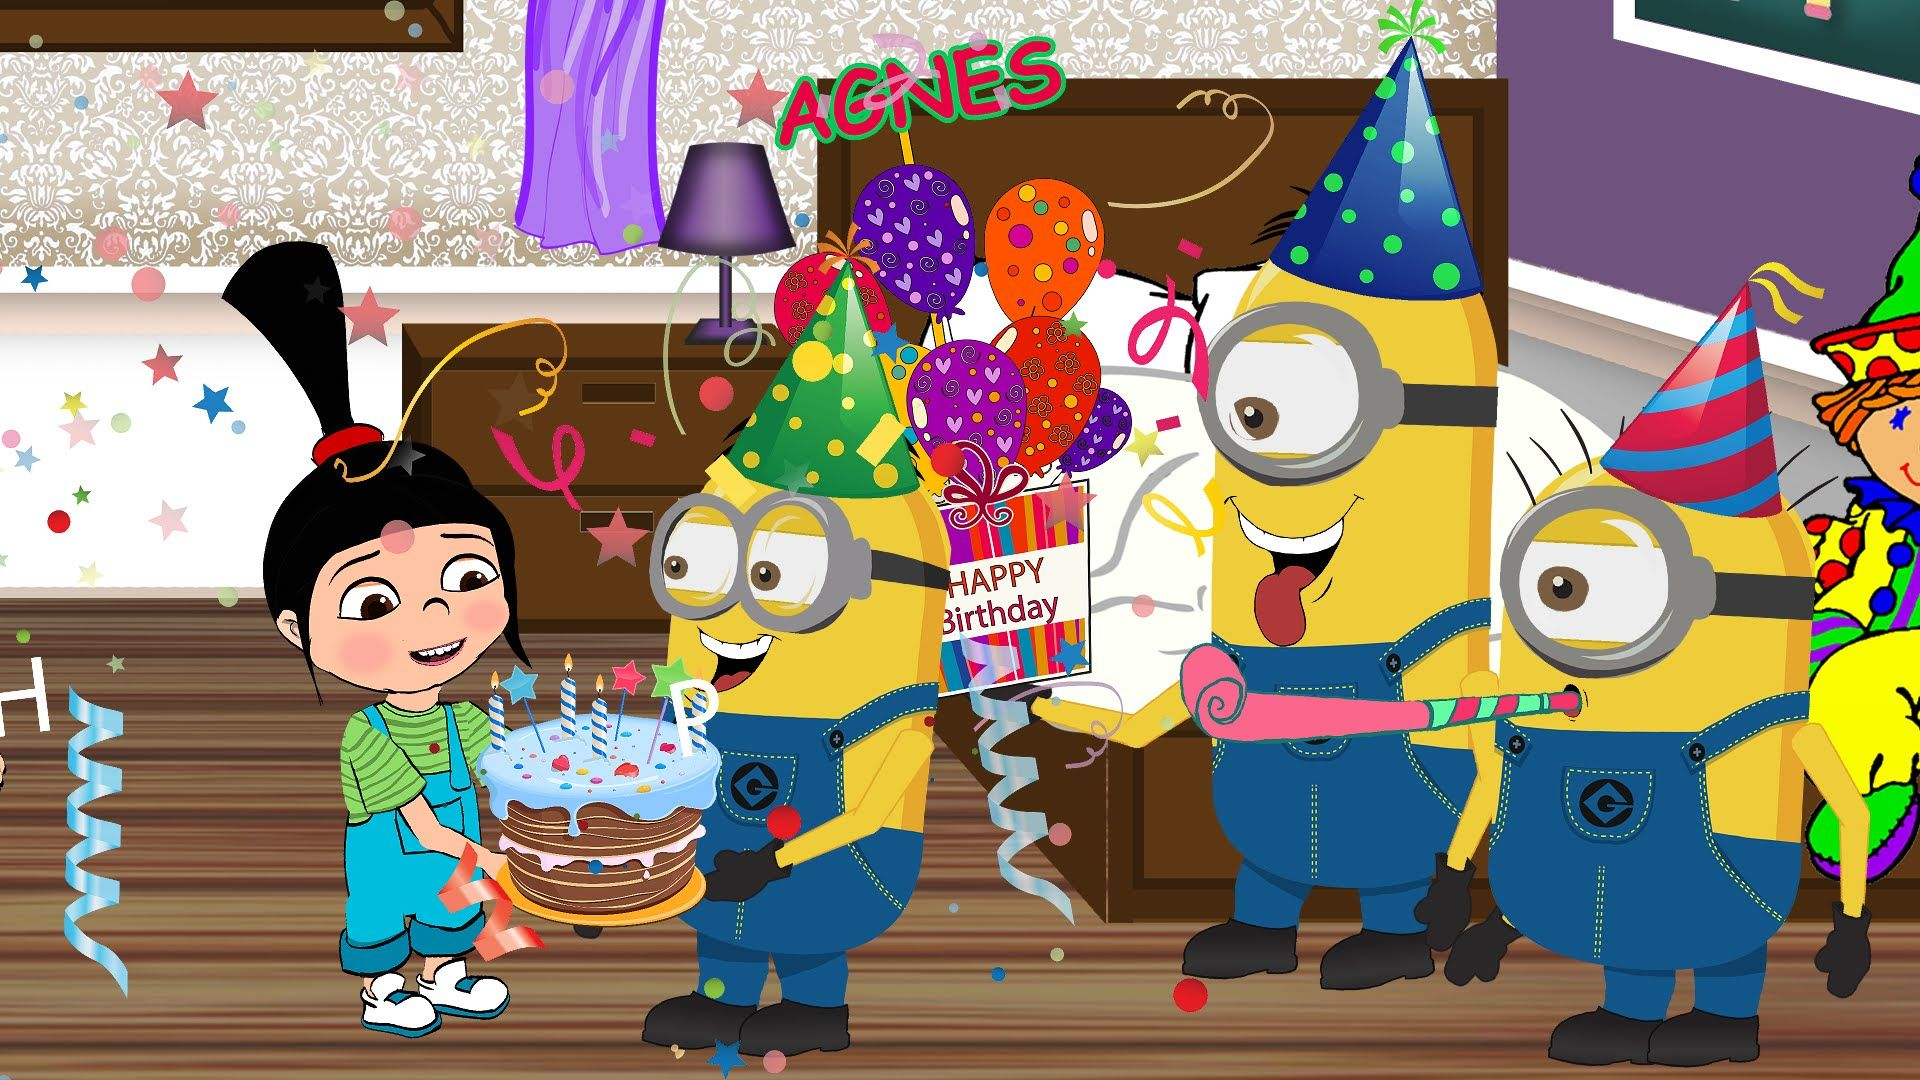 Minions Happy Birthday Song Agnes Despicable me Birthday Party